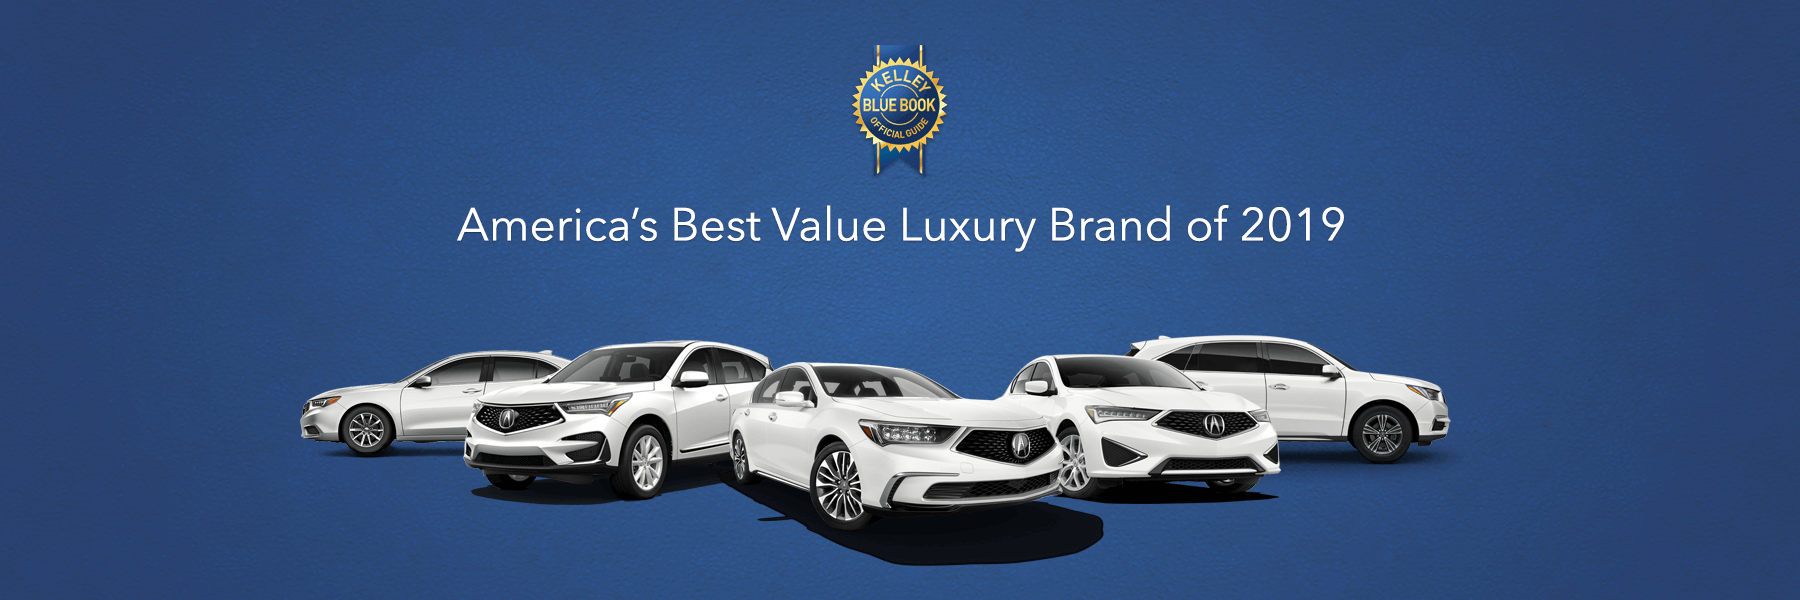 Acura Kelley Blue Book 2019 Best Value Luxury Brand Banner